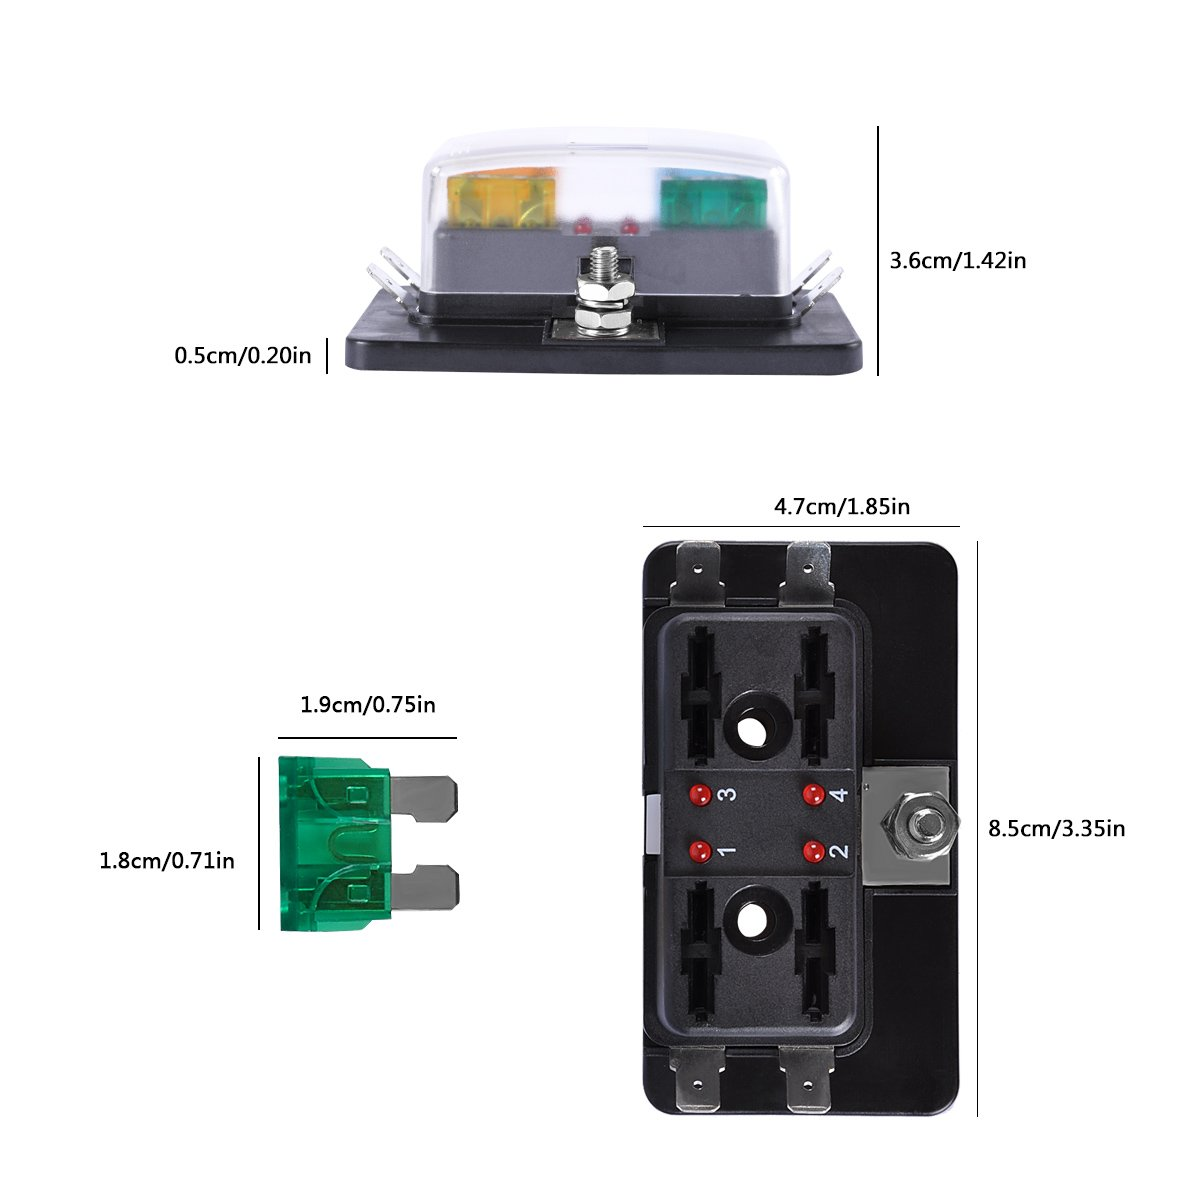 4-Way Blade Fuse Block, AutoEC Marine Fuse Box Holder for Car Boat Marine Trike with Led Safety Indicator for Blown Fuse by AutoEC (Image #3)